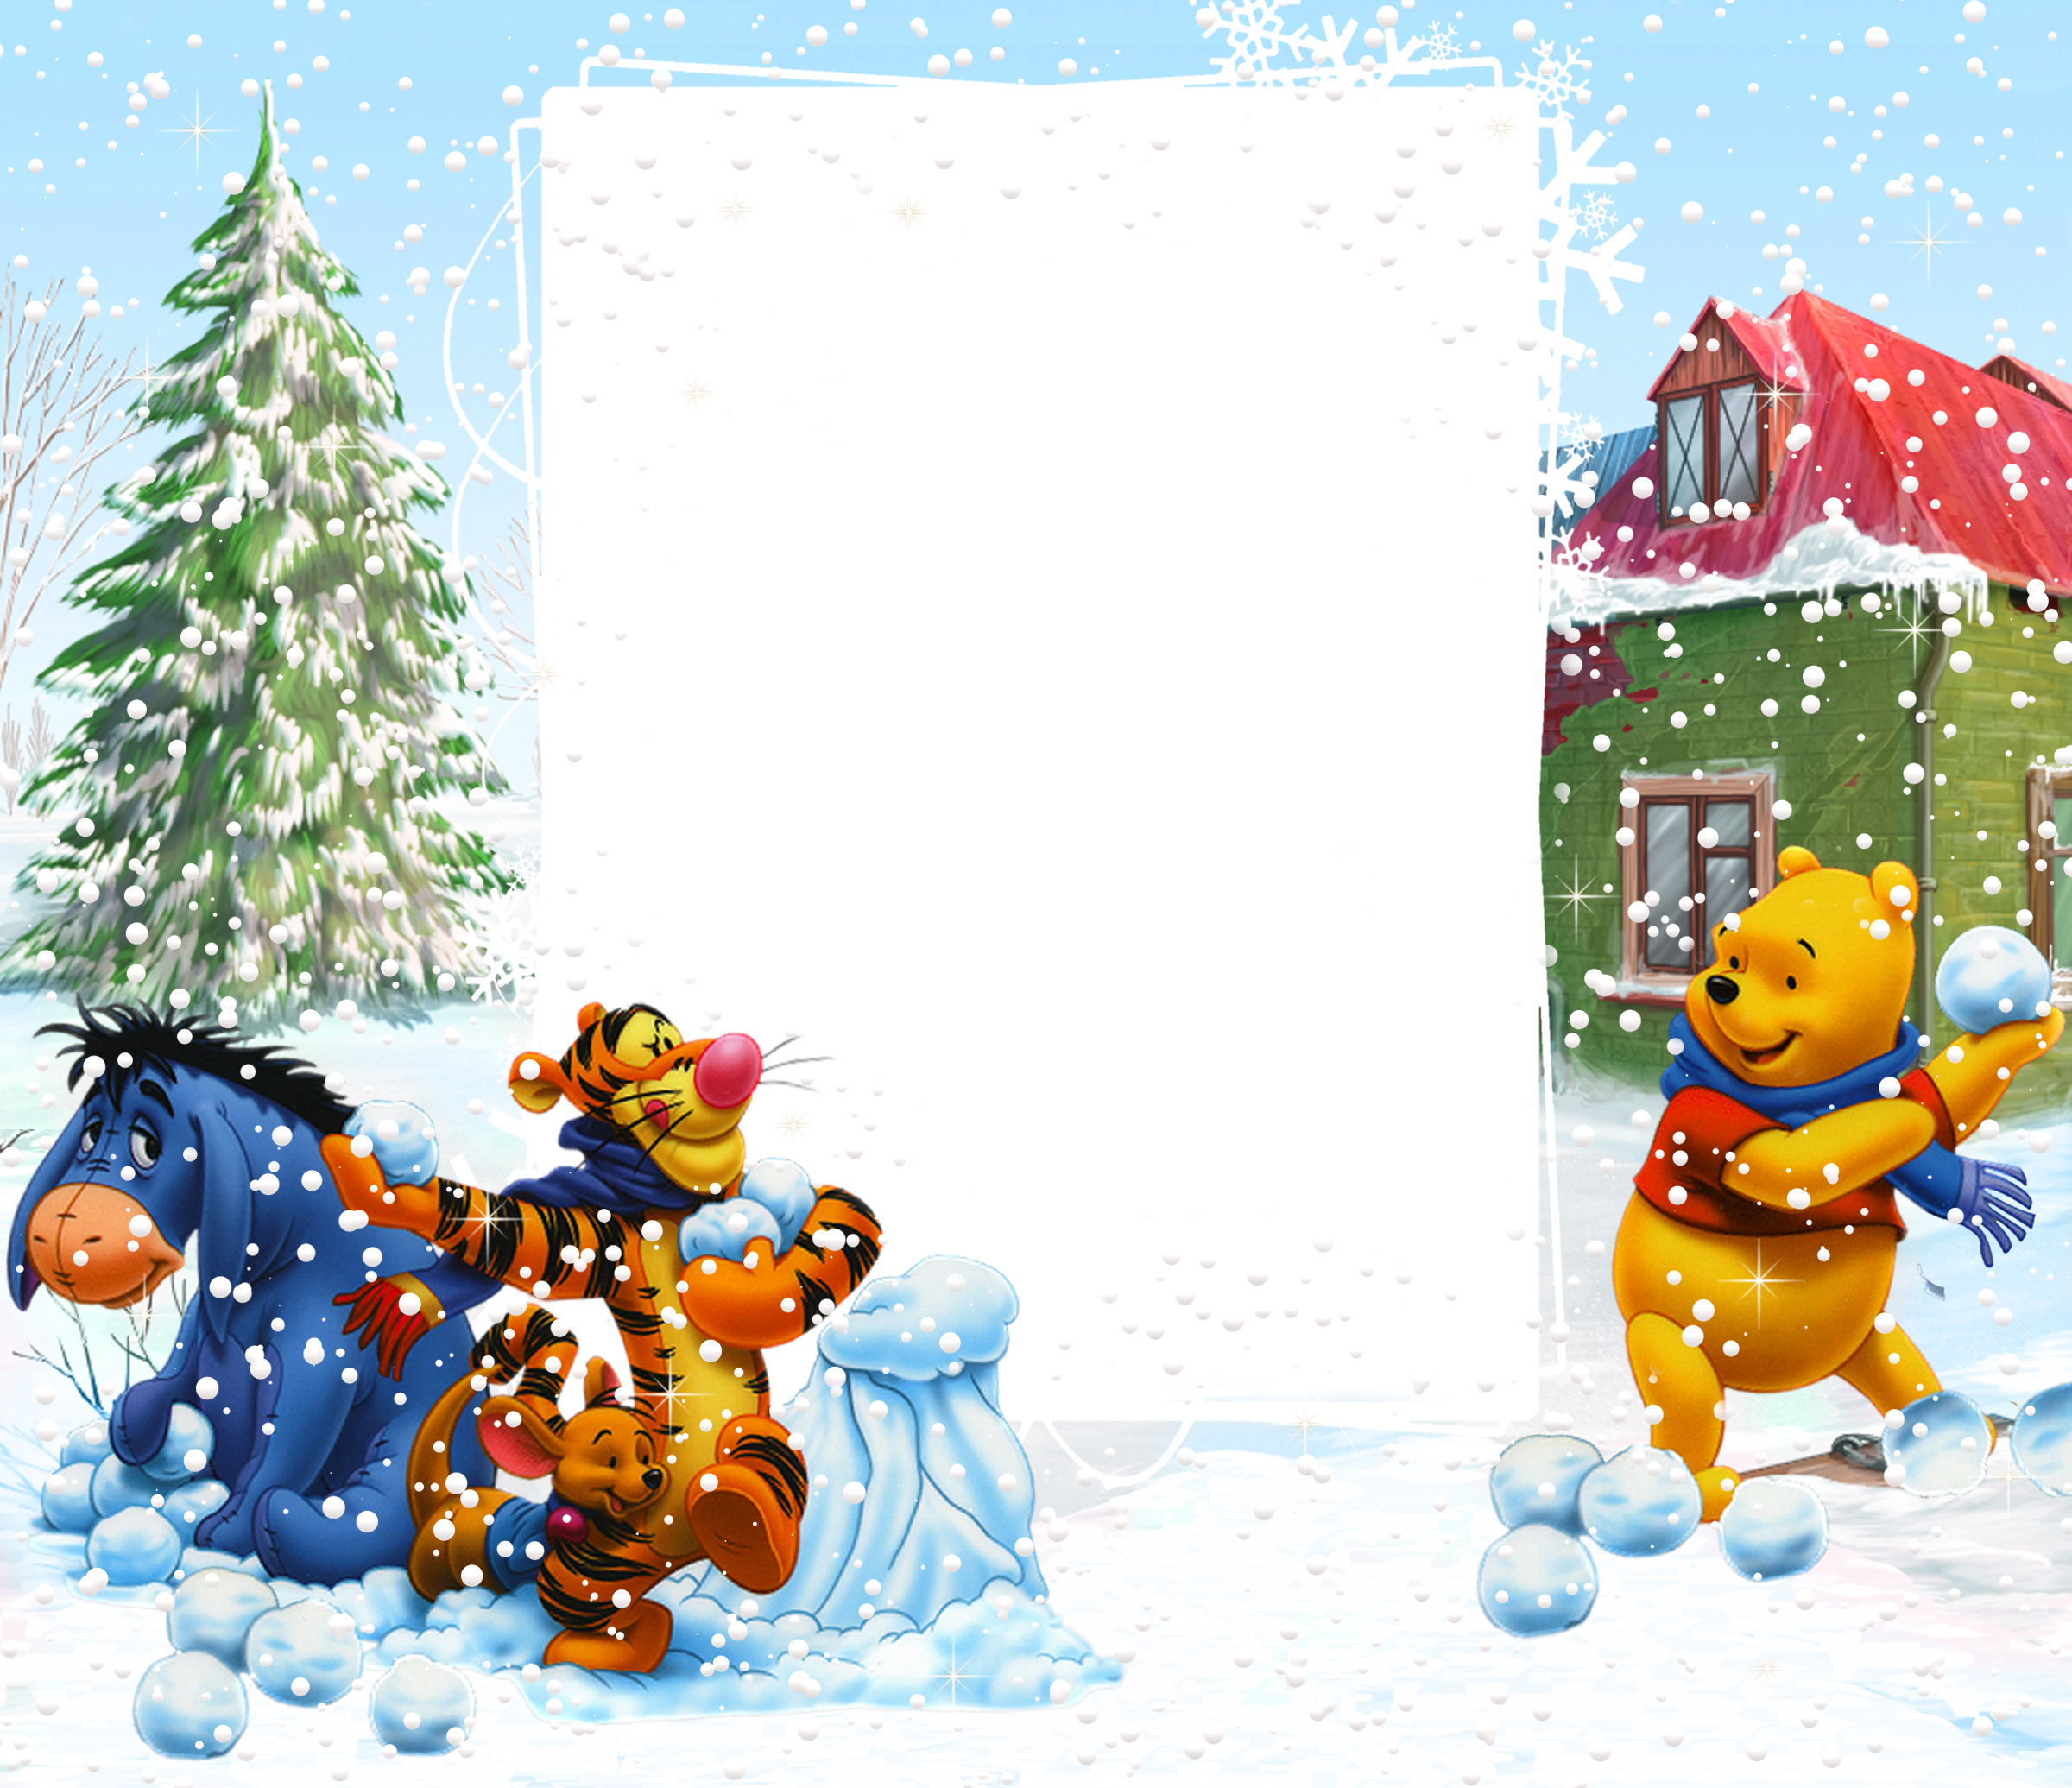 clipart freeuse download Snow borders clipart. Winnie the pooh winter.